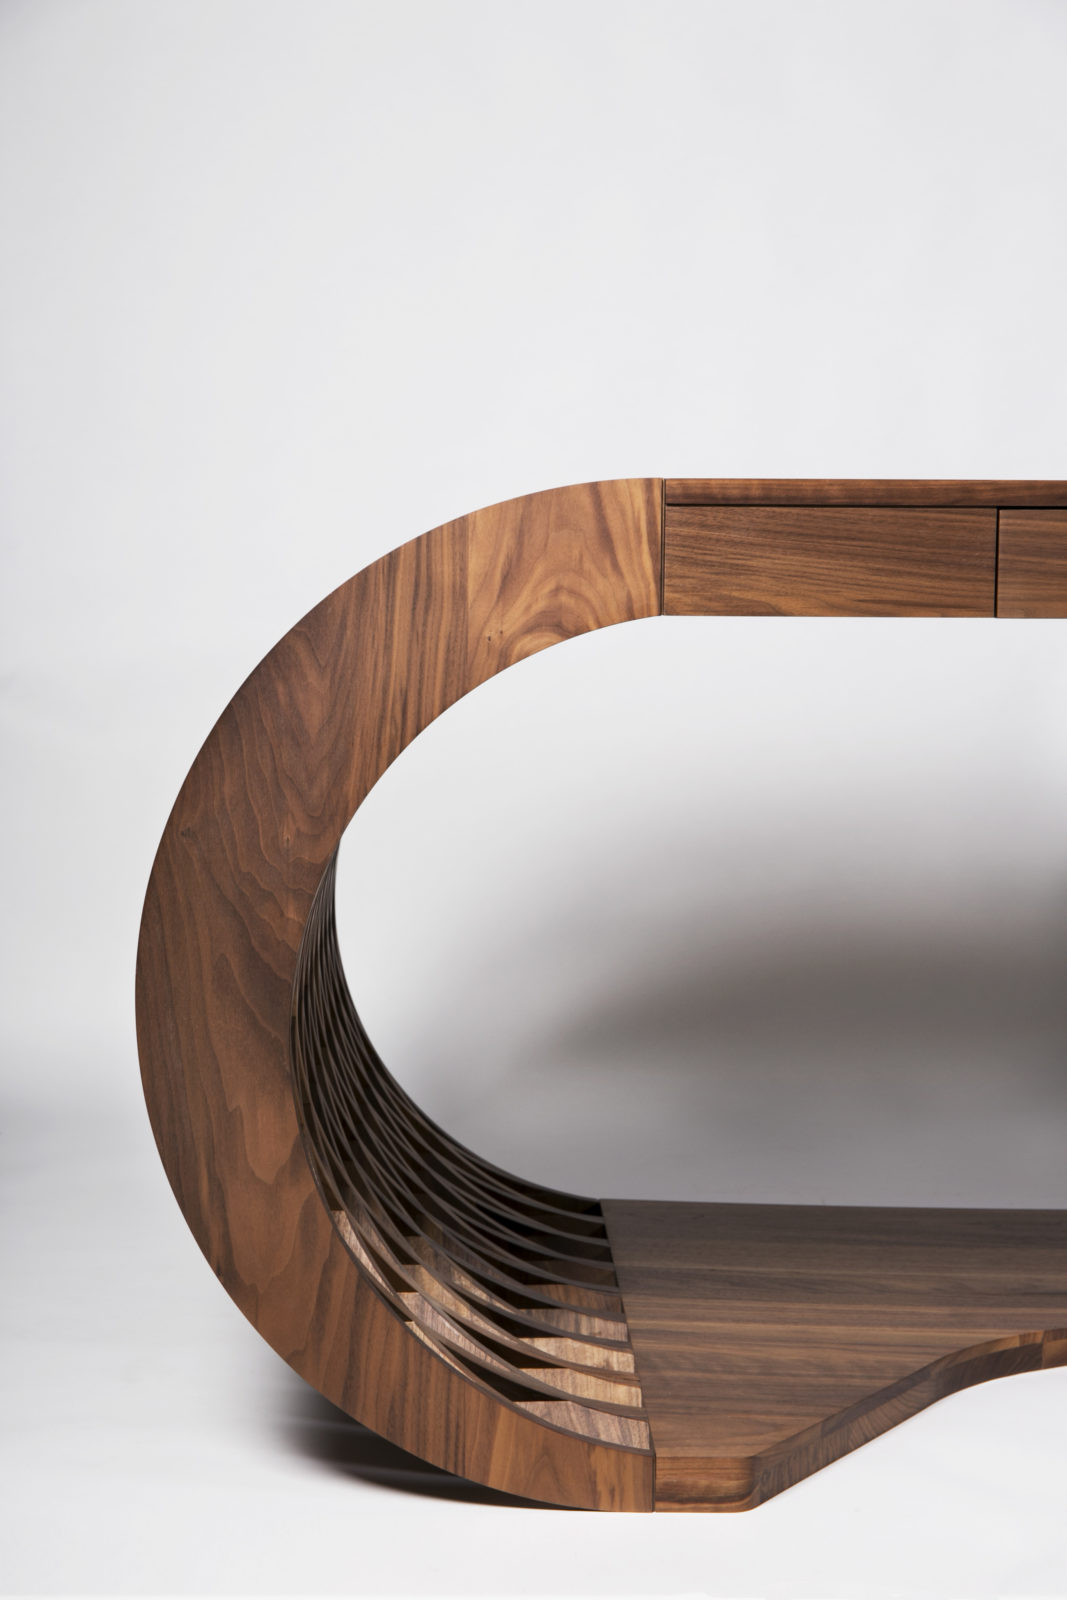 curved bespoke walnut desk profile